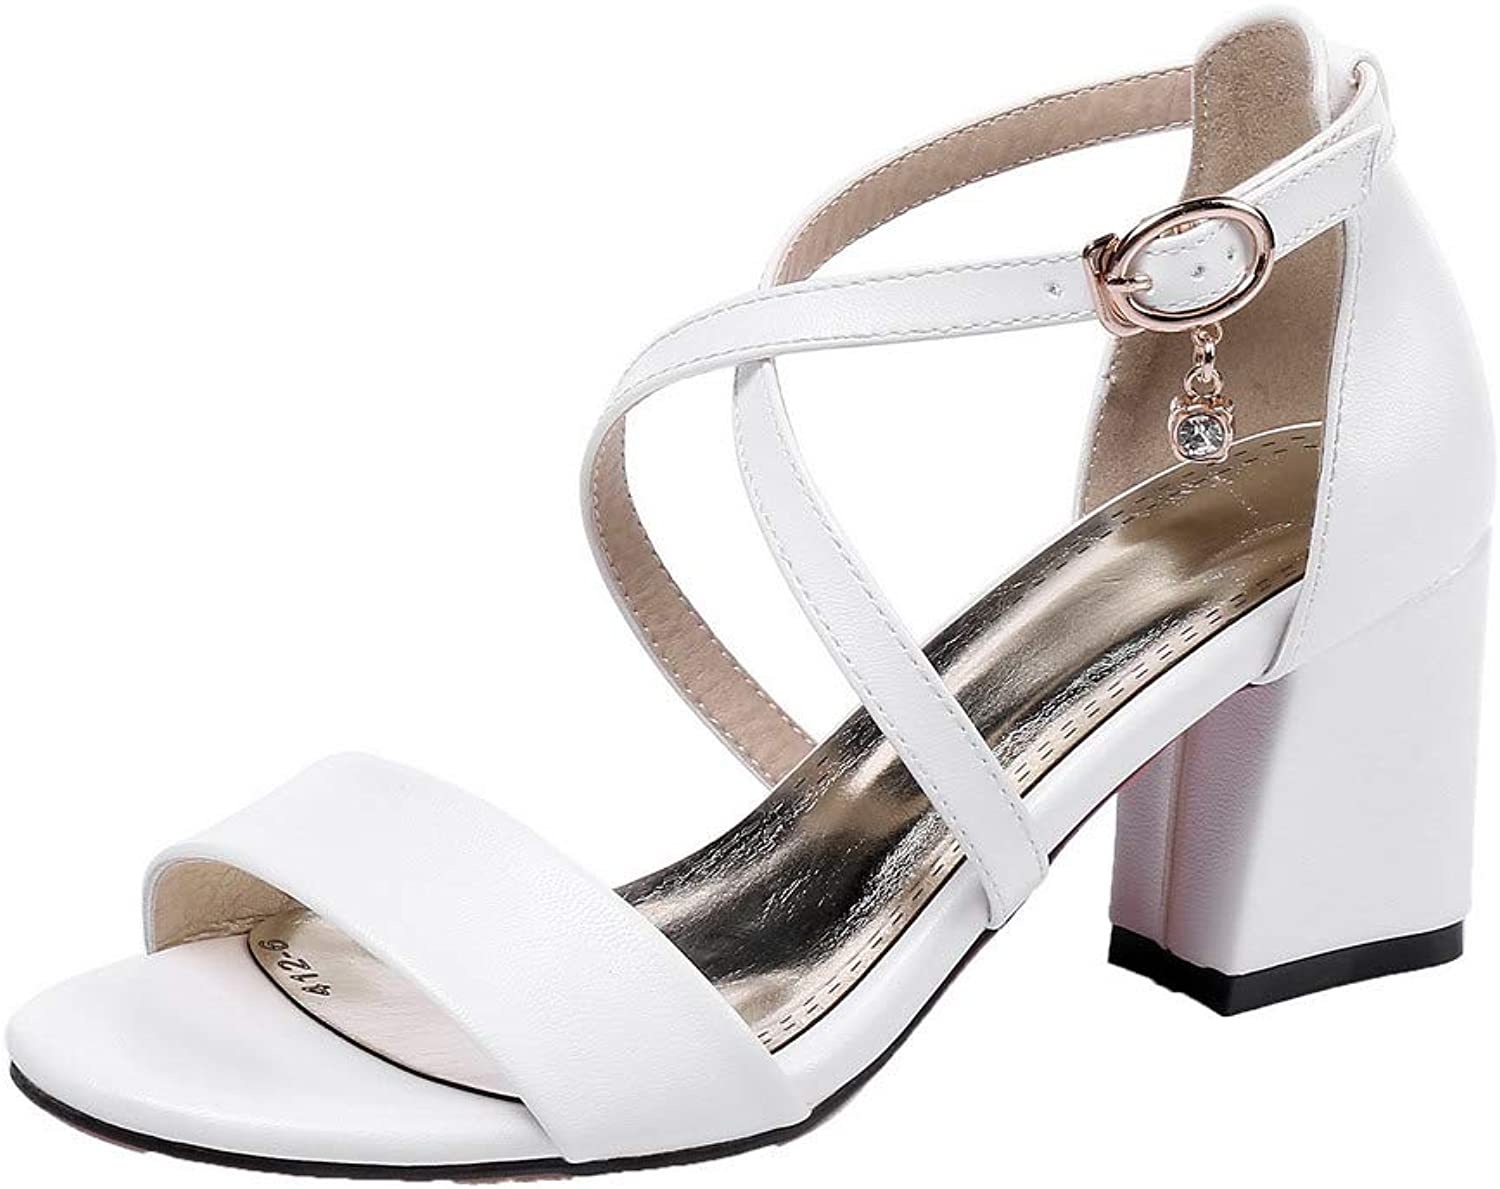 AllhqFashion Women's Pu Solid Buckle Kitten-Heels Sandals, White, 42